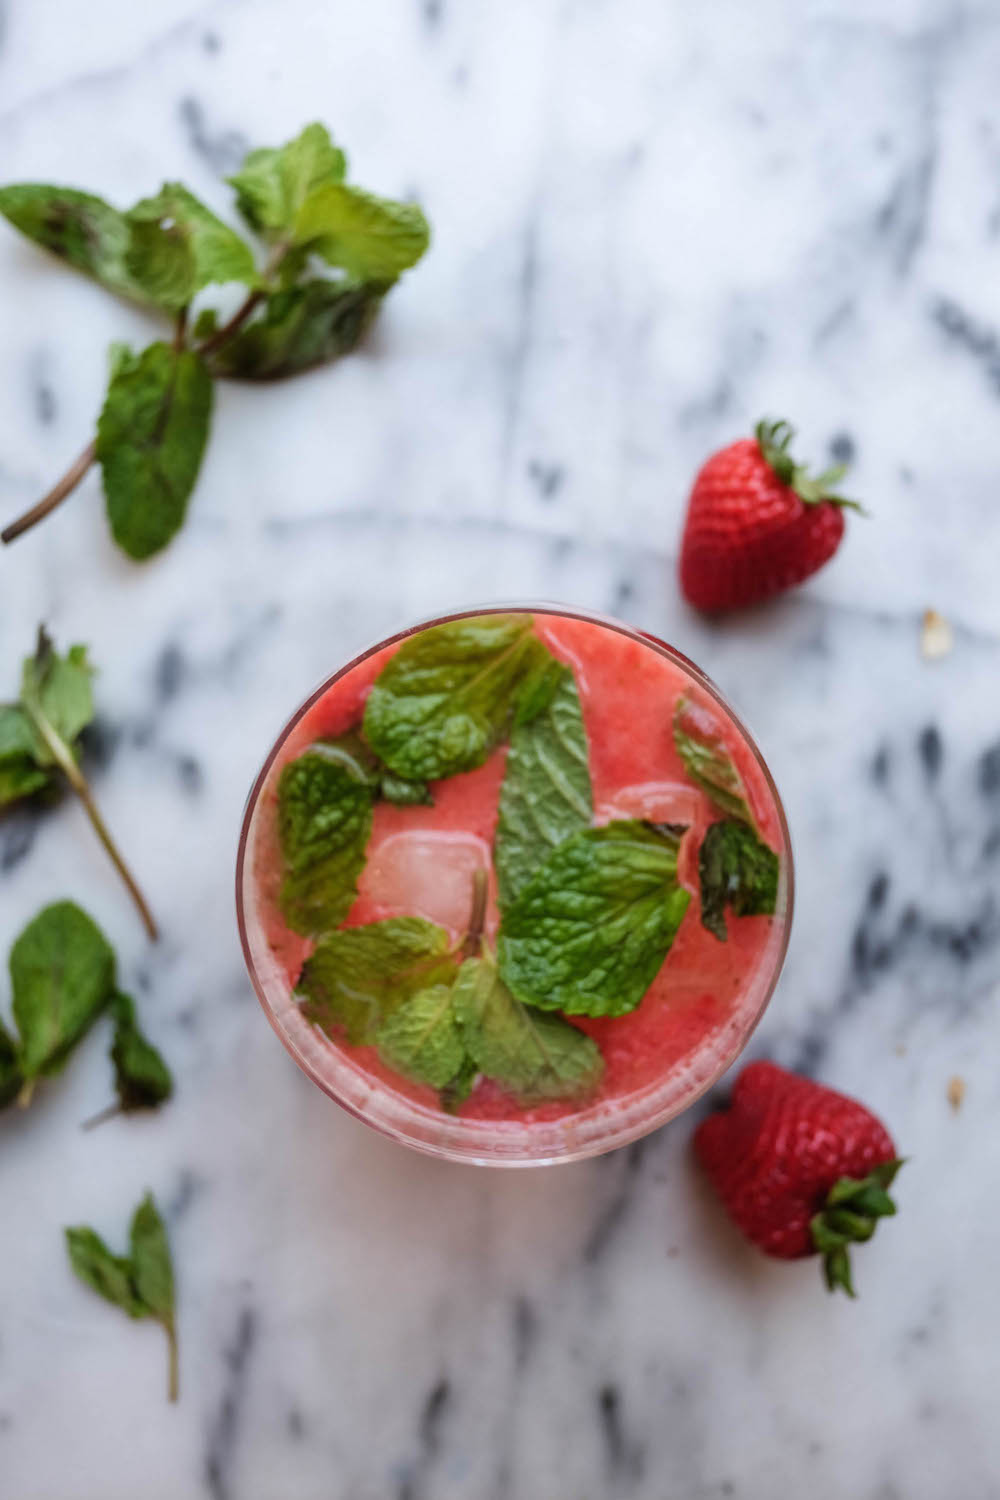 Strawberry White Wine Spritzer Cocktail Recipe - The Stripe Blog12